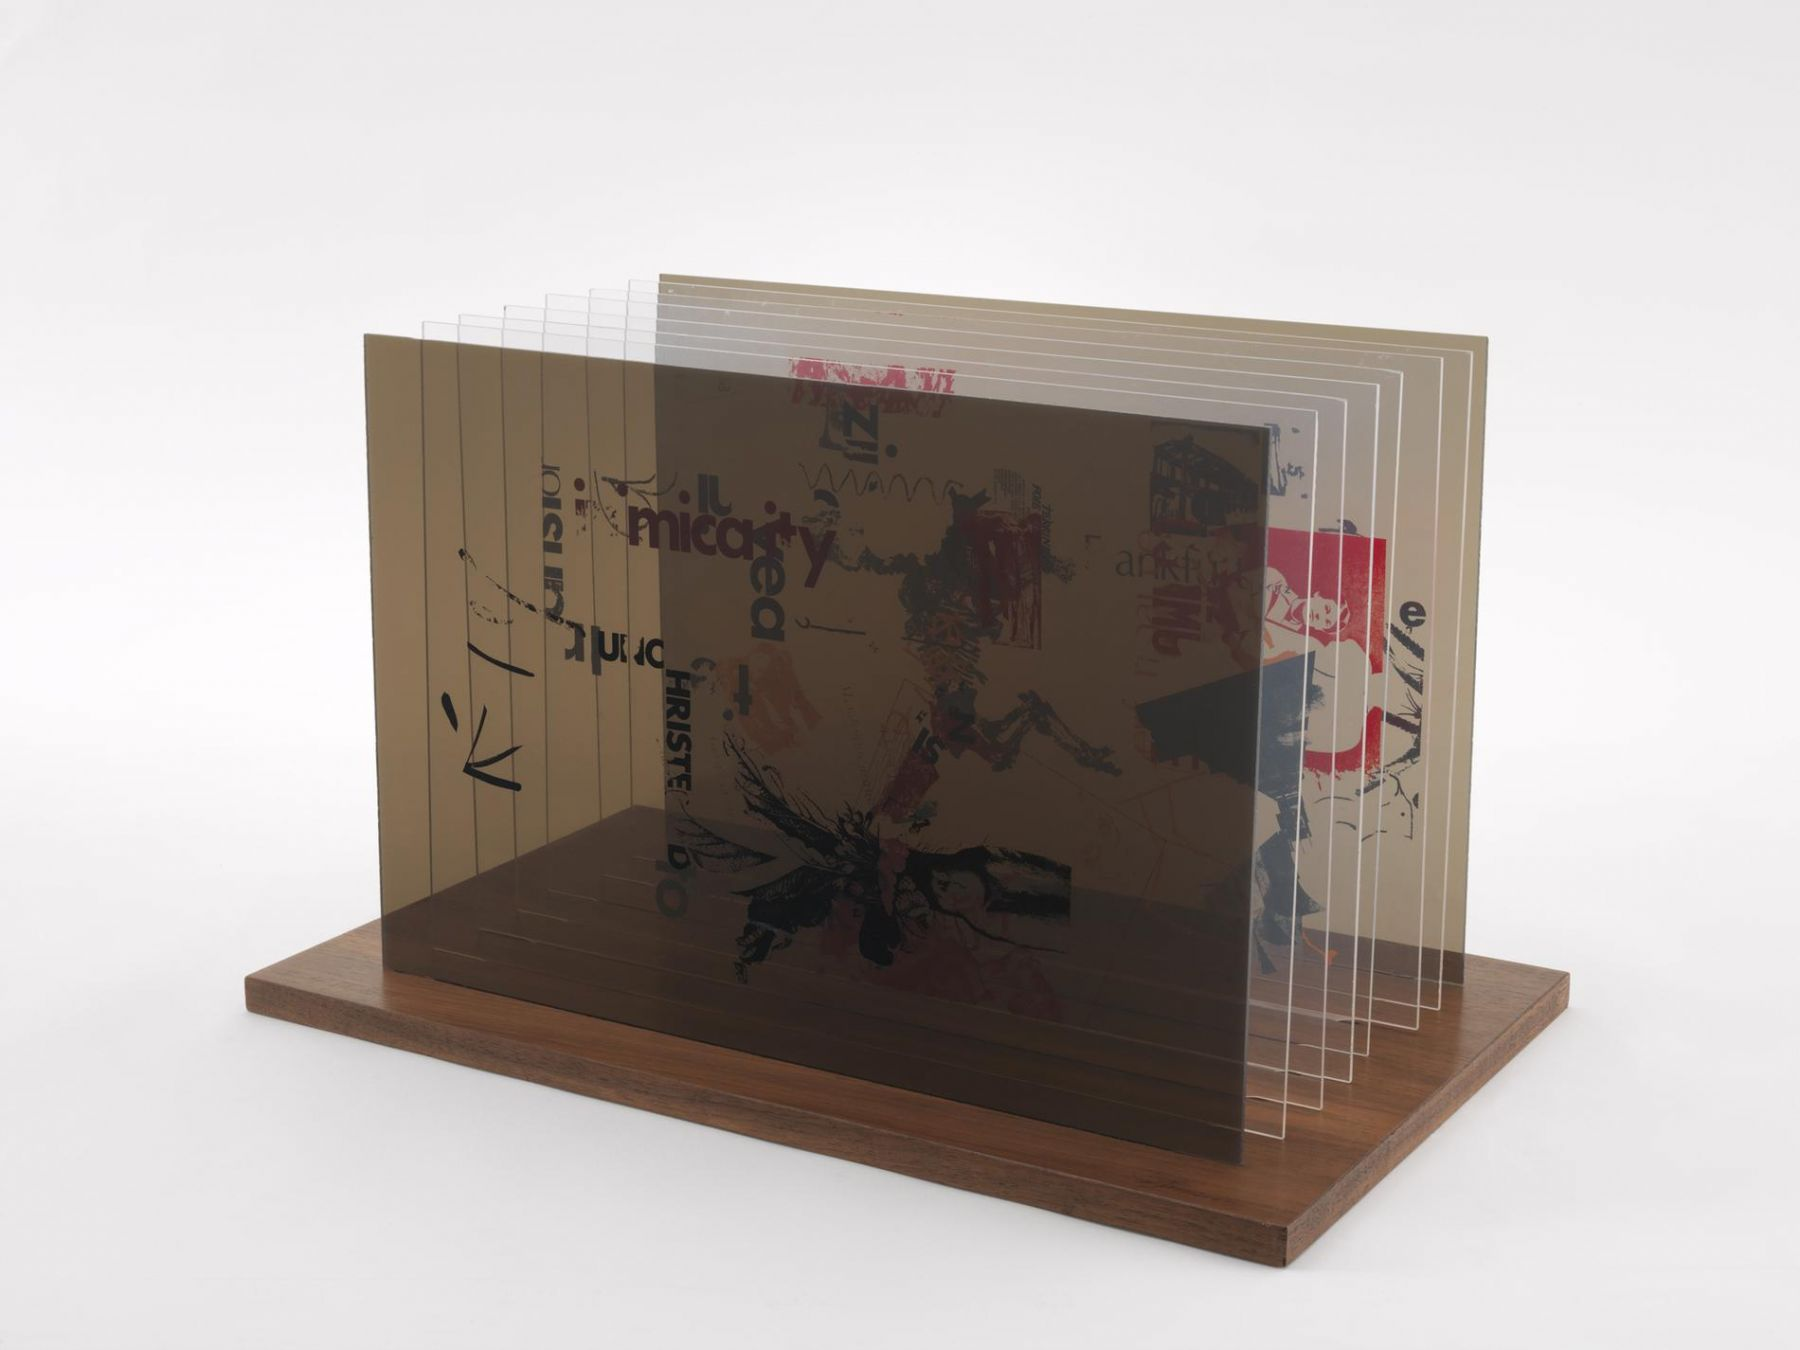 , JOHN CAGE Not Wanting to Say Anything About Marcel Plexigram VI, 1969 Screenprint on eight Plexiglas panels with walnut base 14 x 20 x 1/8 in. (35.6 x 50.8 x 0.3 cm)